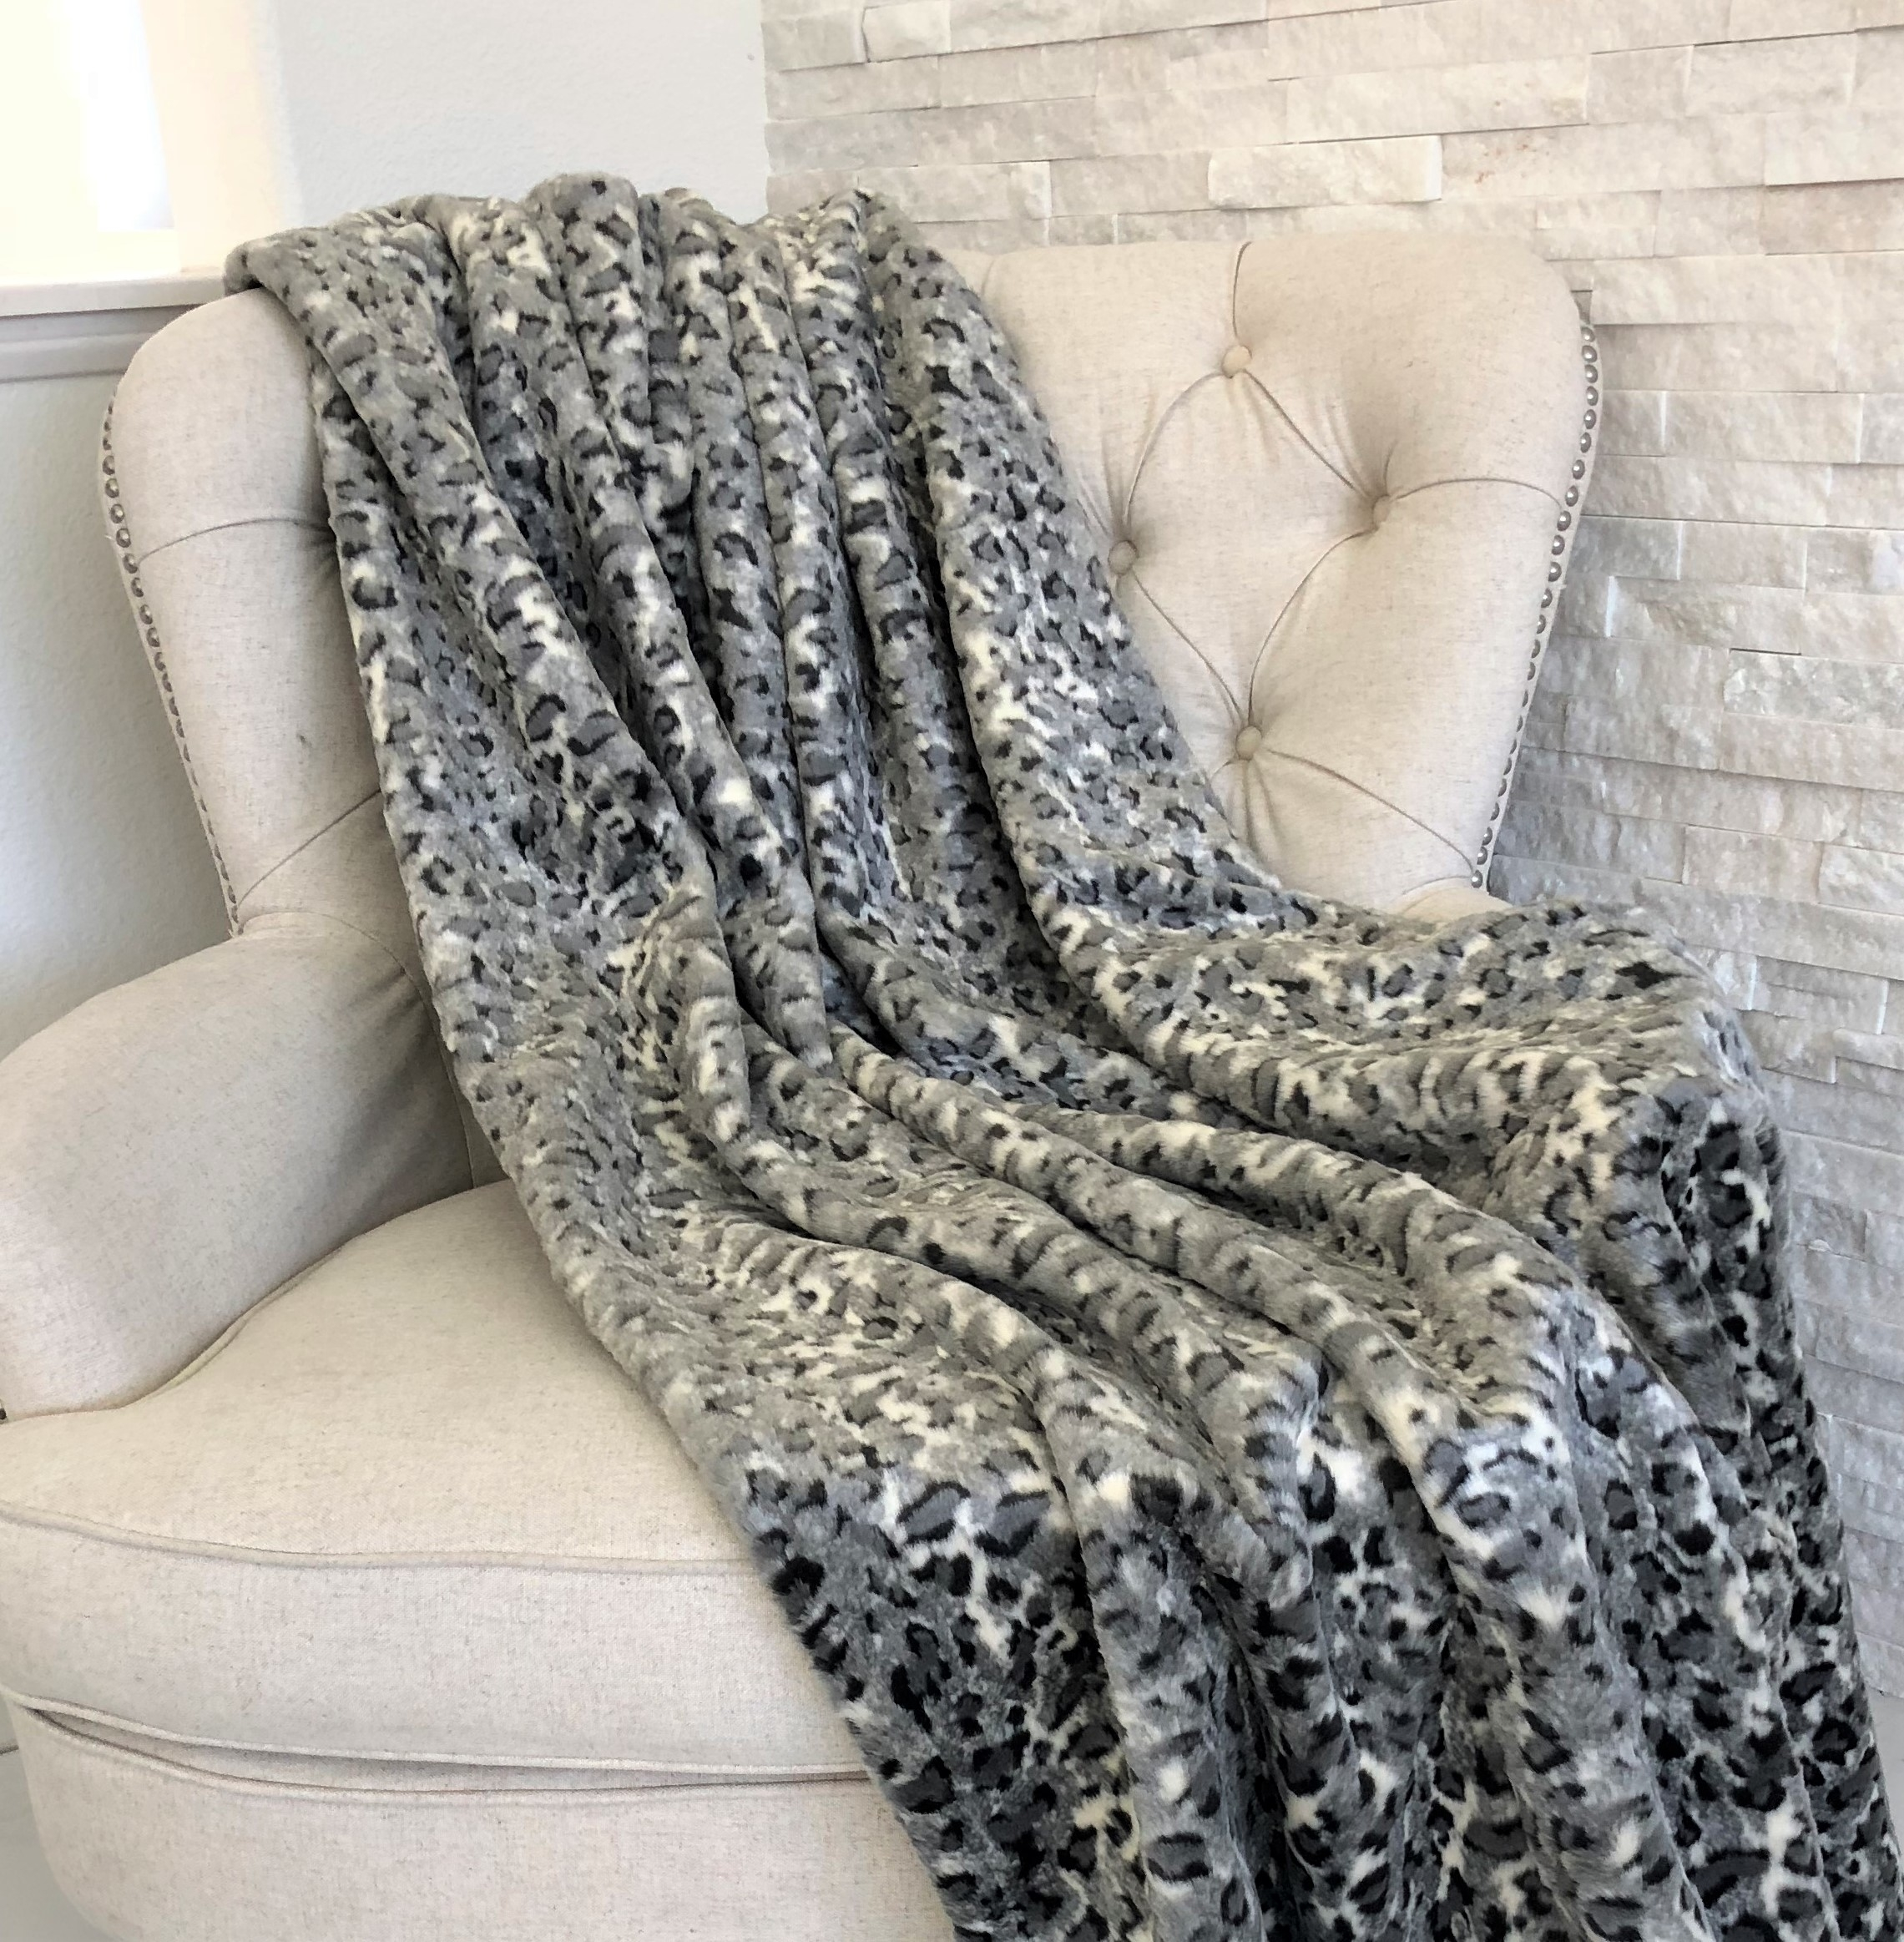 Plutus Snow Leopard Faux Fur Gray Luxury Throw 5b1077851591026d39293641